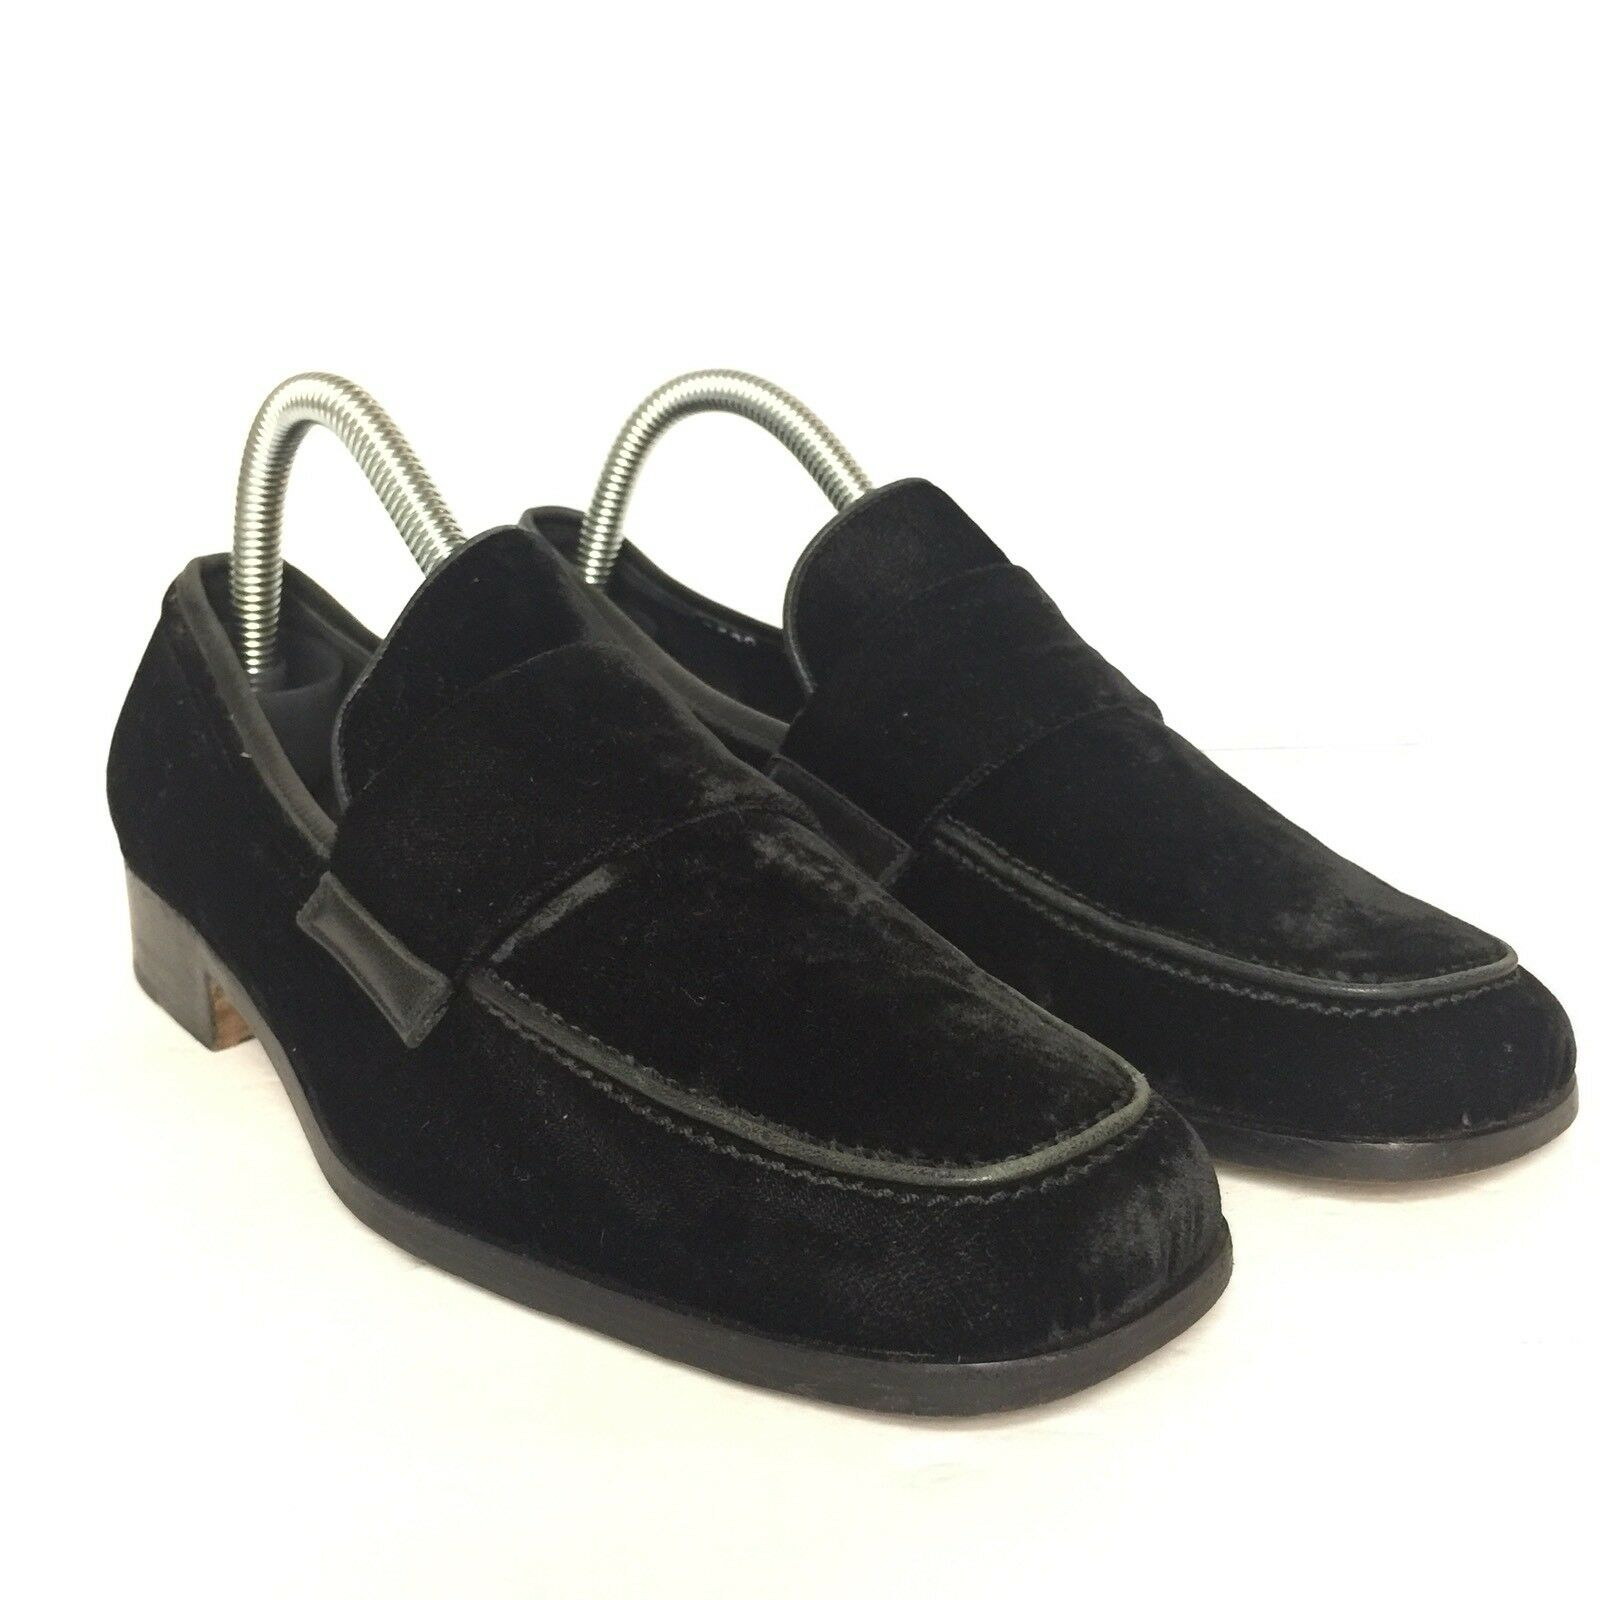 Cole Haan Womens Velvet Black Made in  Loafers shoes Size 8B